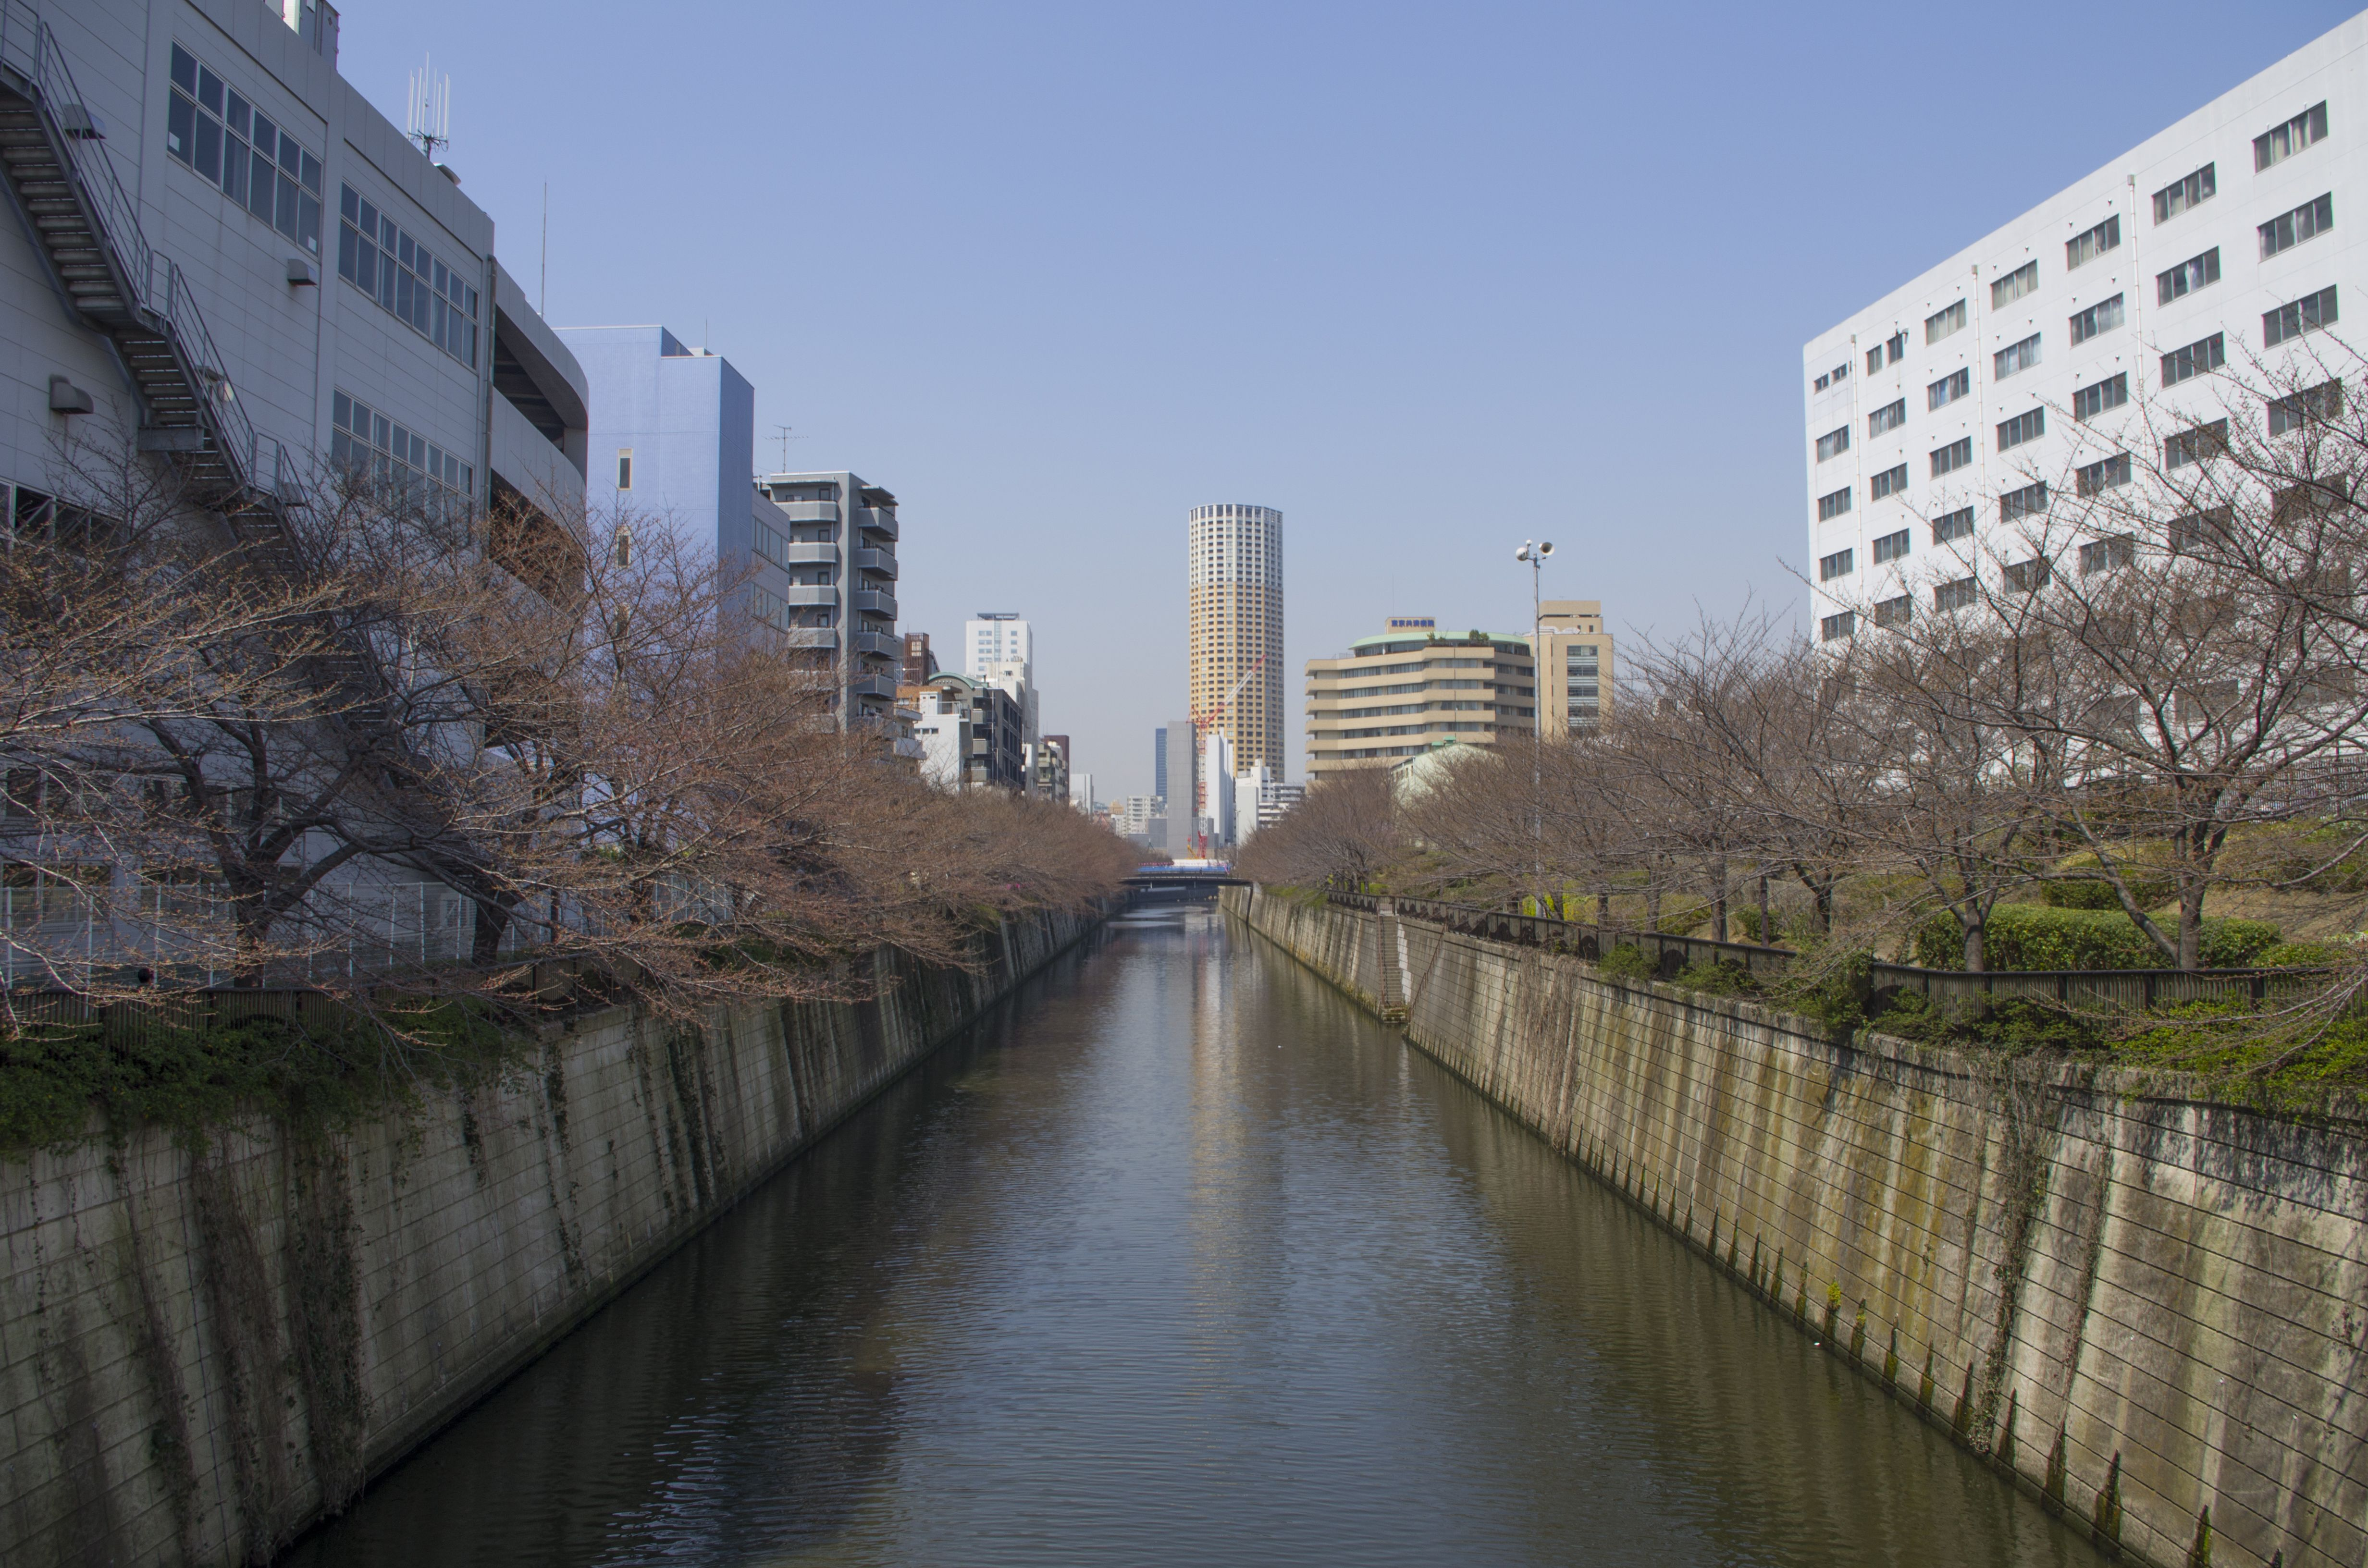 Meguro river and its riverbanks again